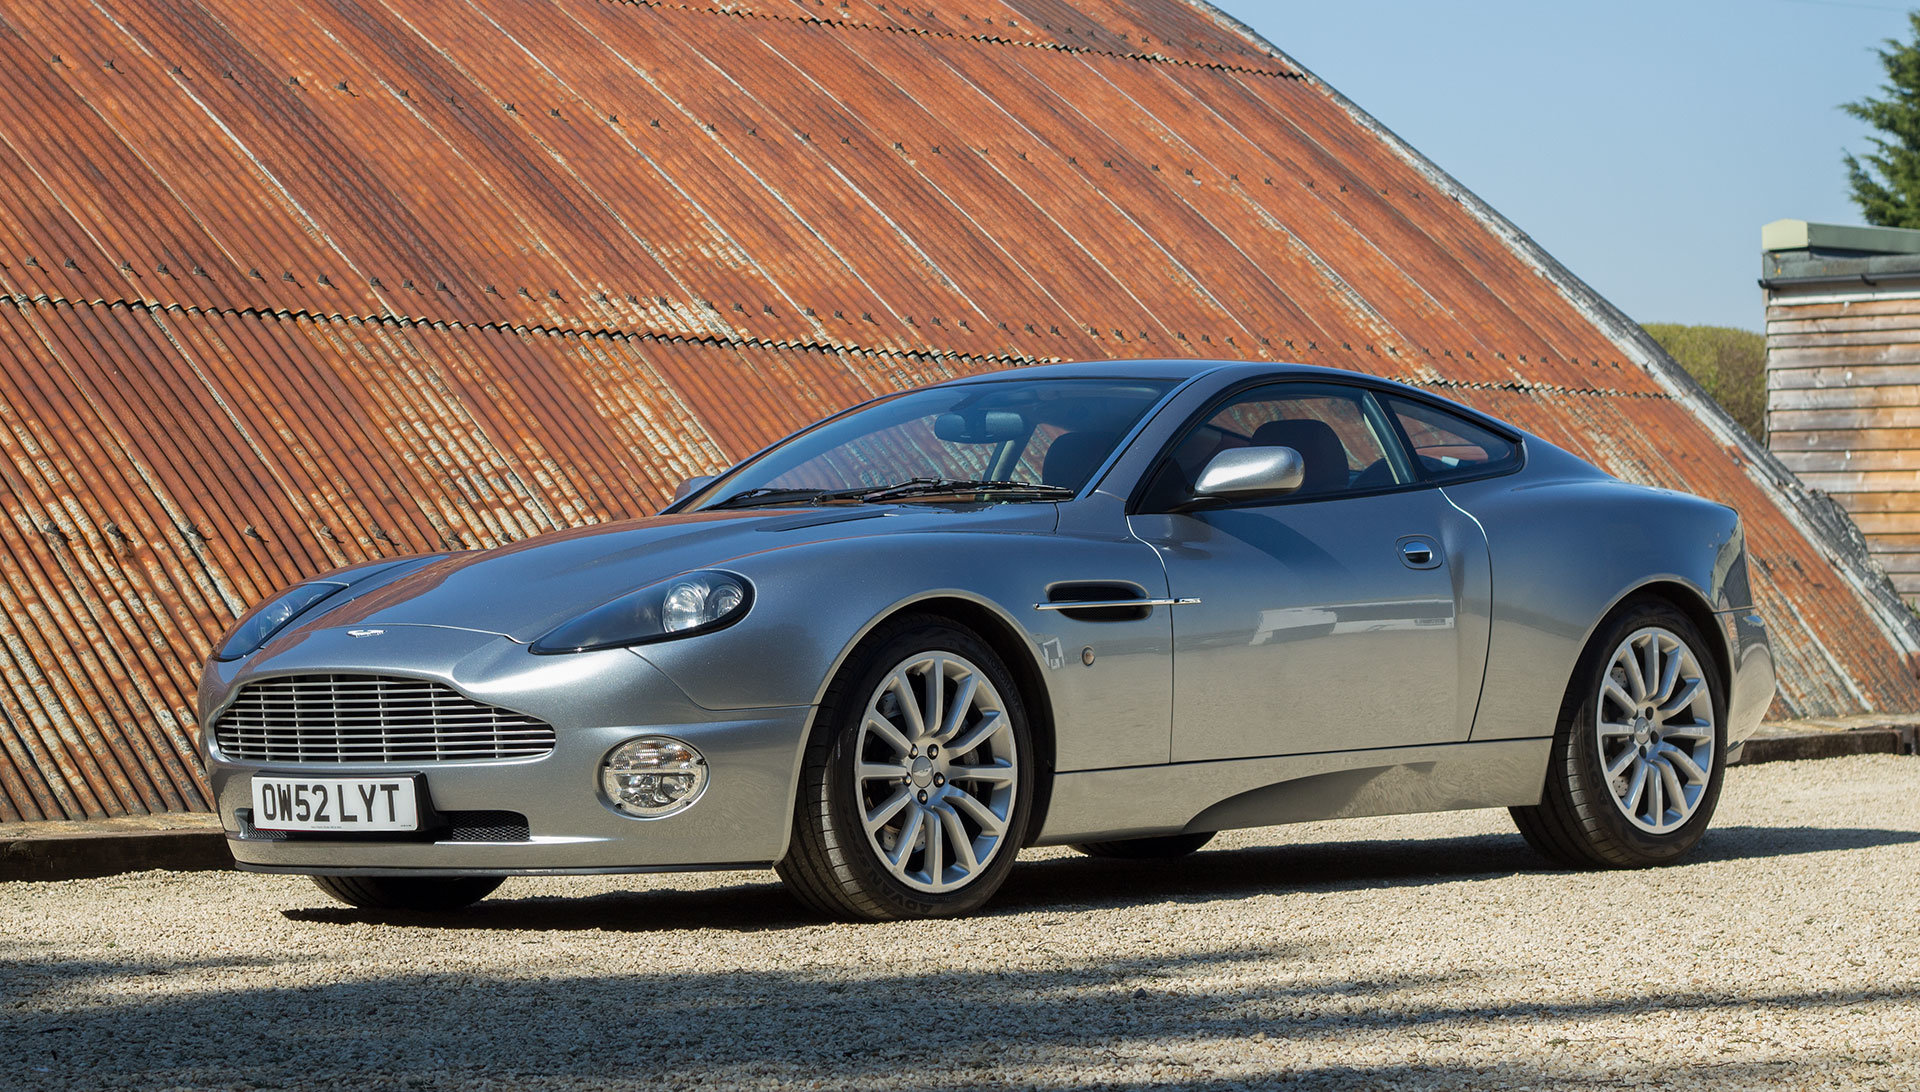 2003 Aston Martin V12 Vanquish - 22,000 miles For Sale (picture 1 of 6)